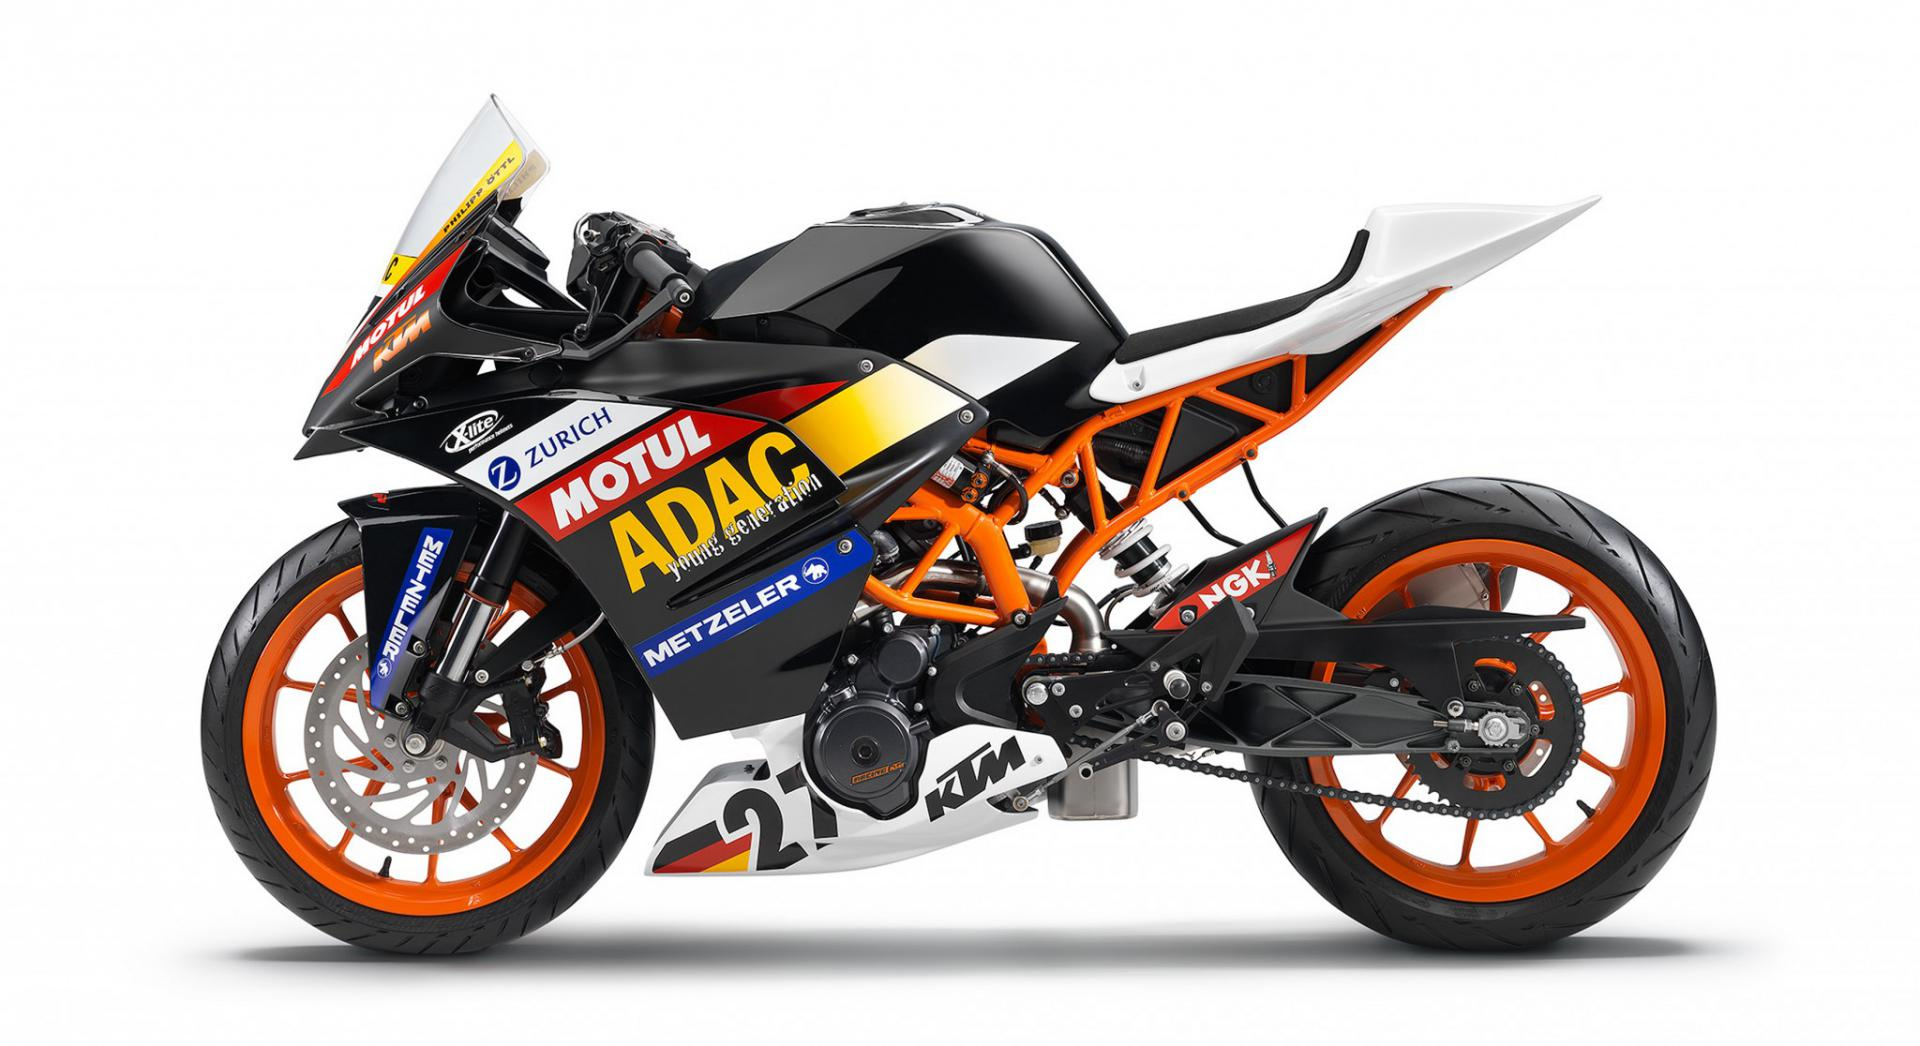 prices for rc390 race bike and series registration announced - ktm